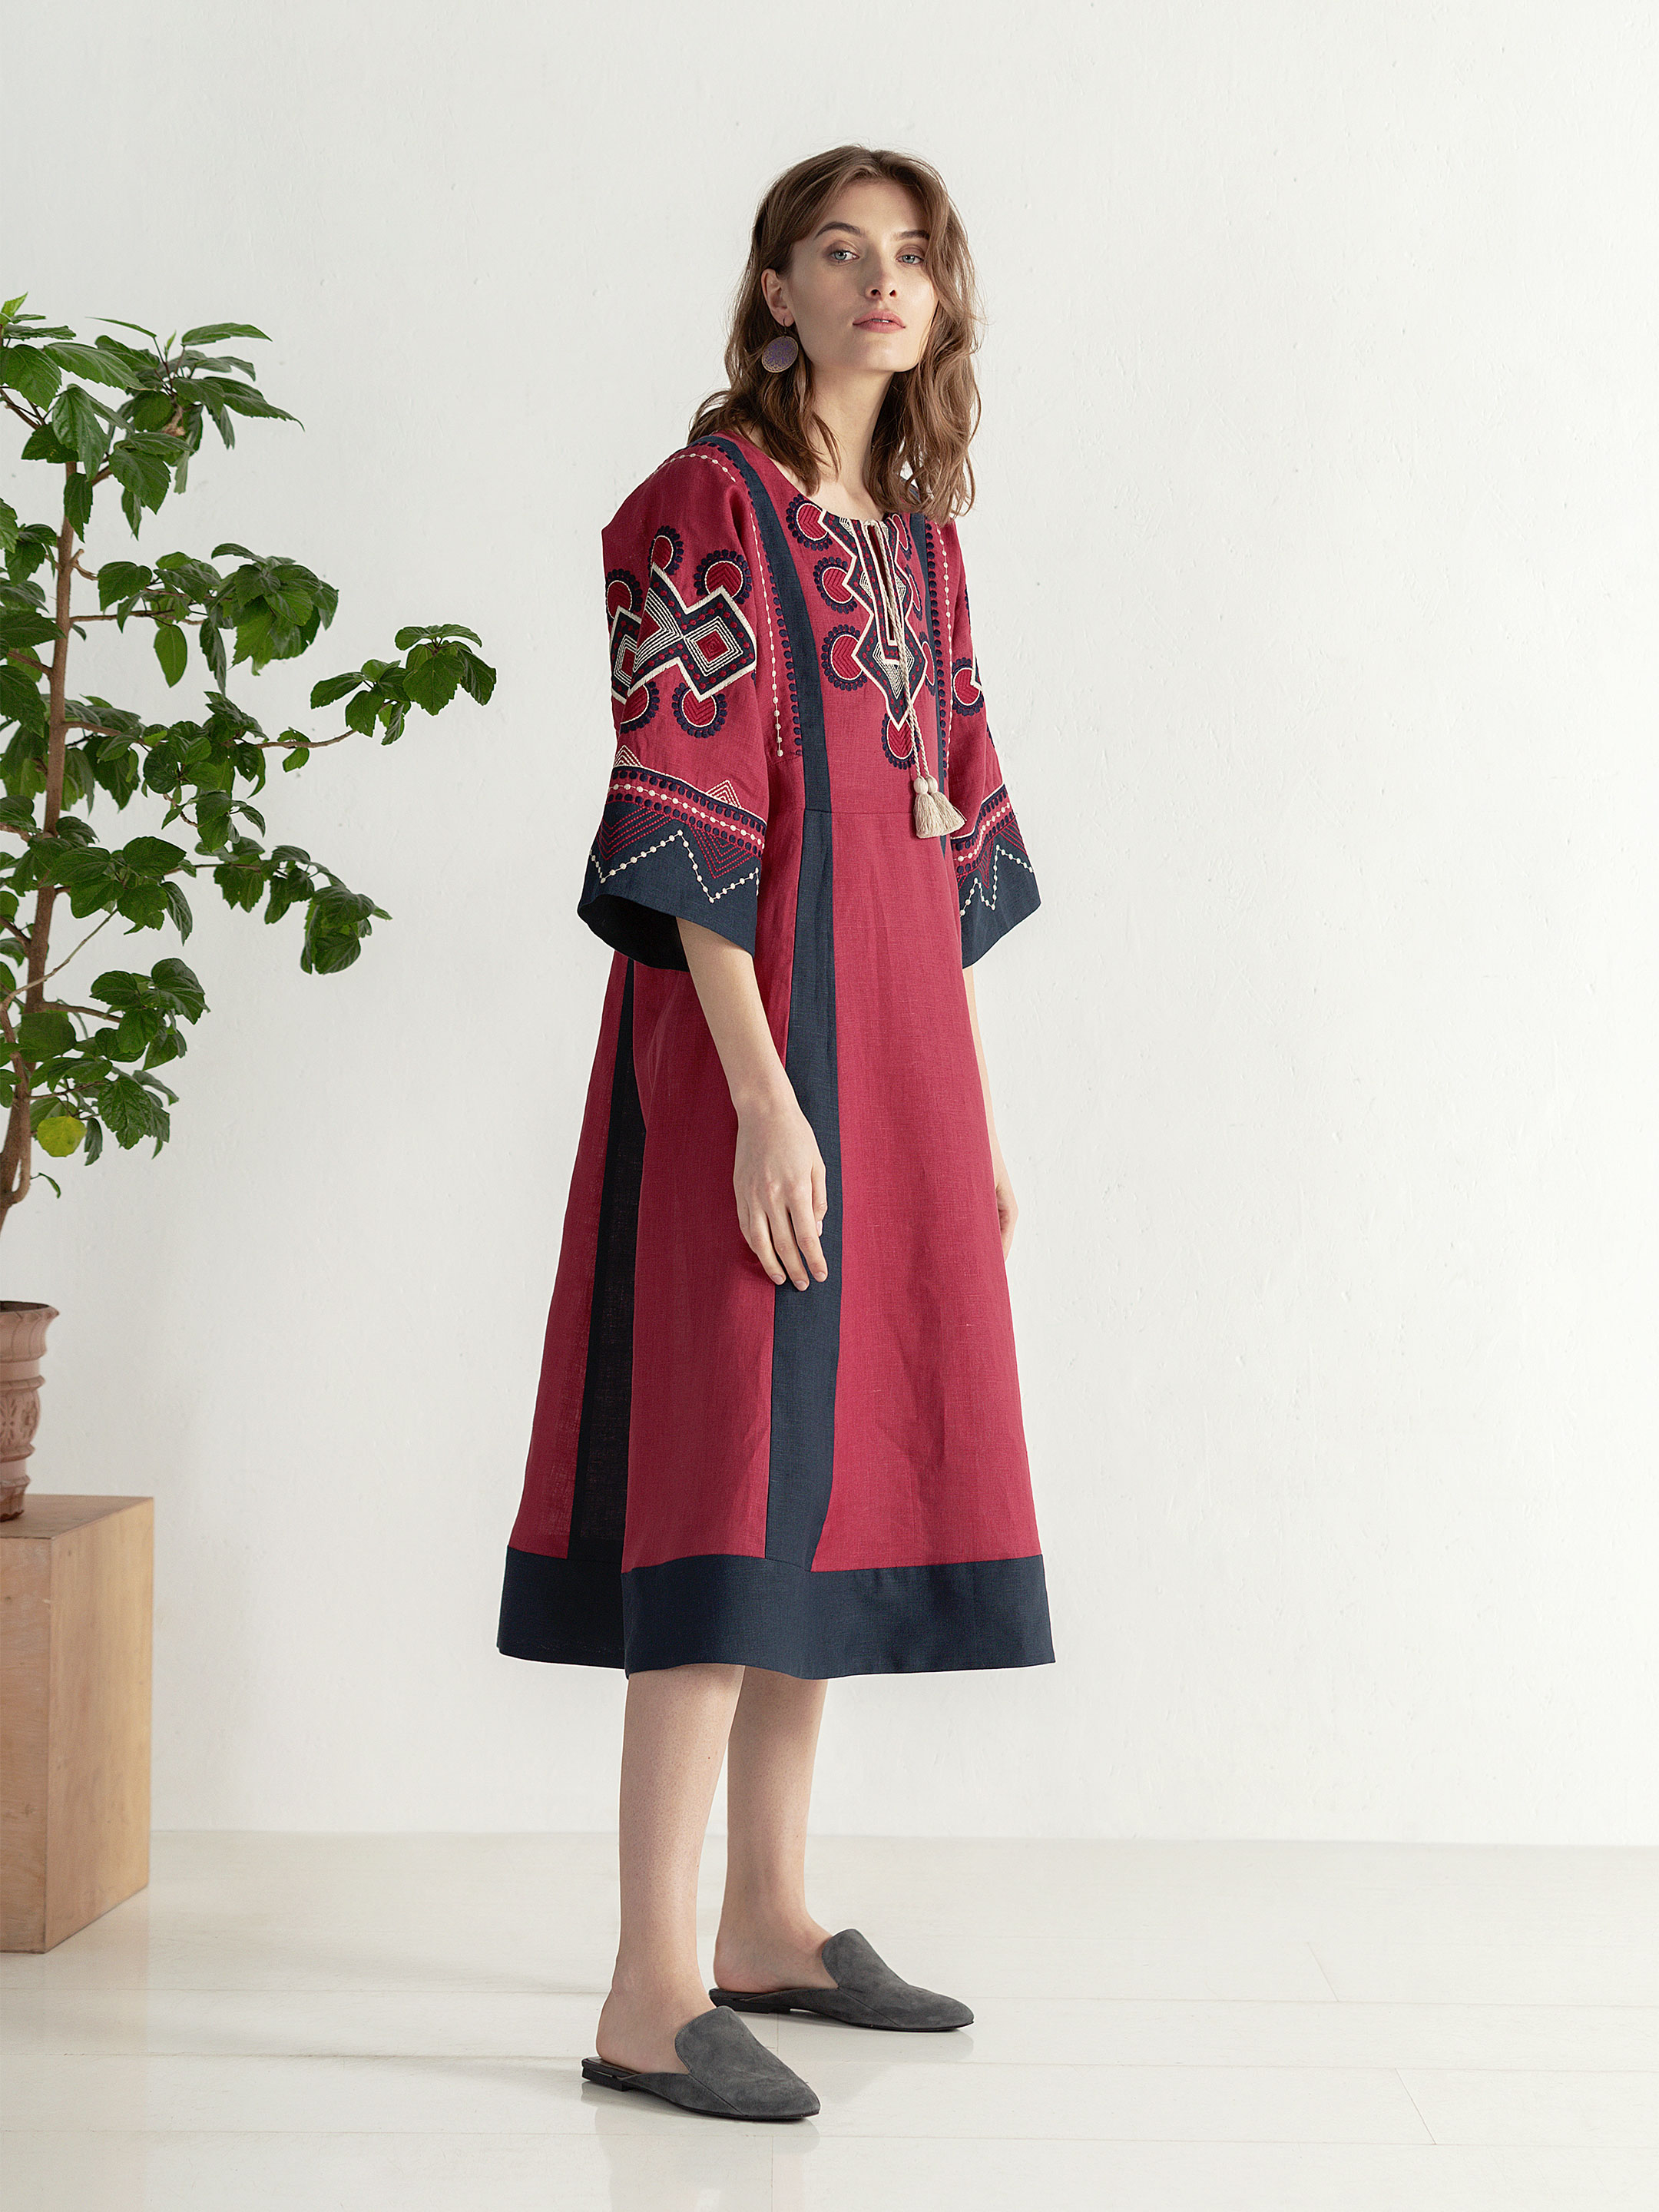 Boho dress of free robe with embroidery Temple2 4